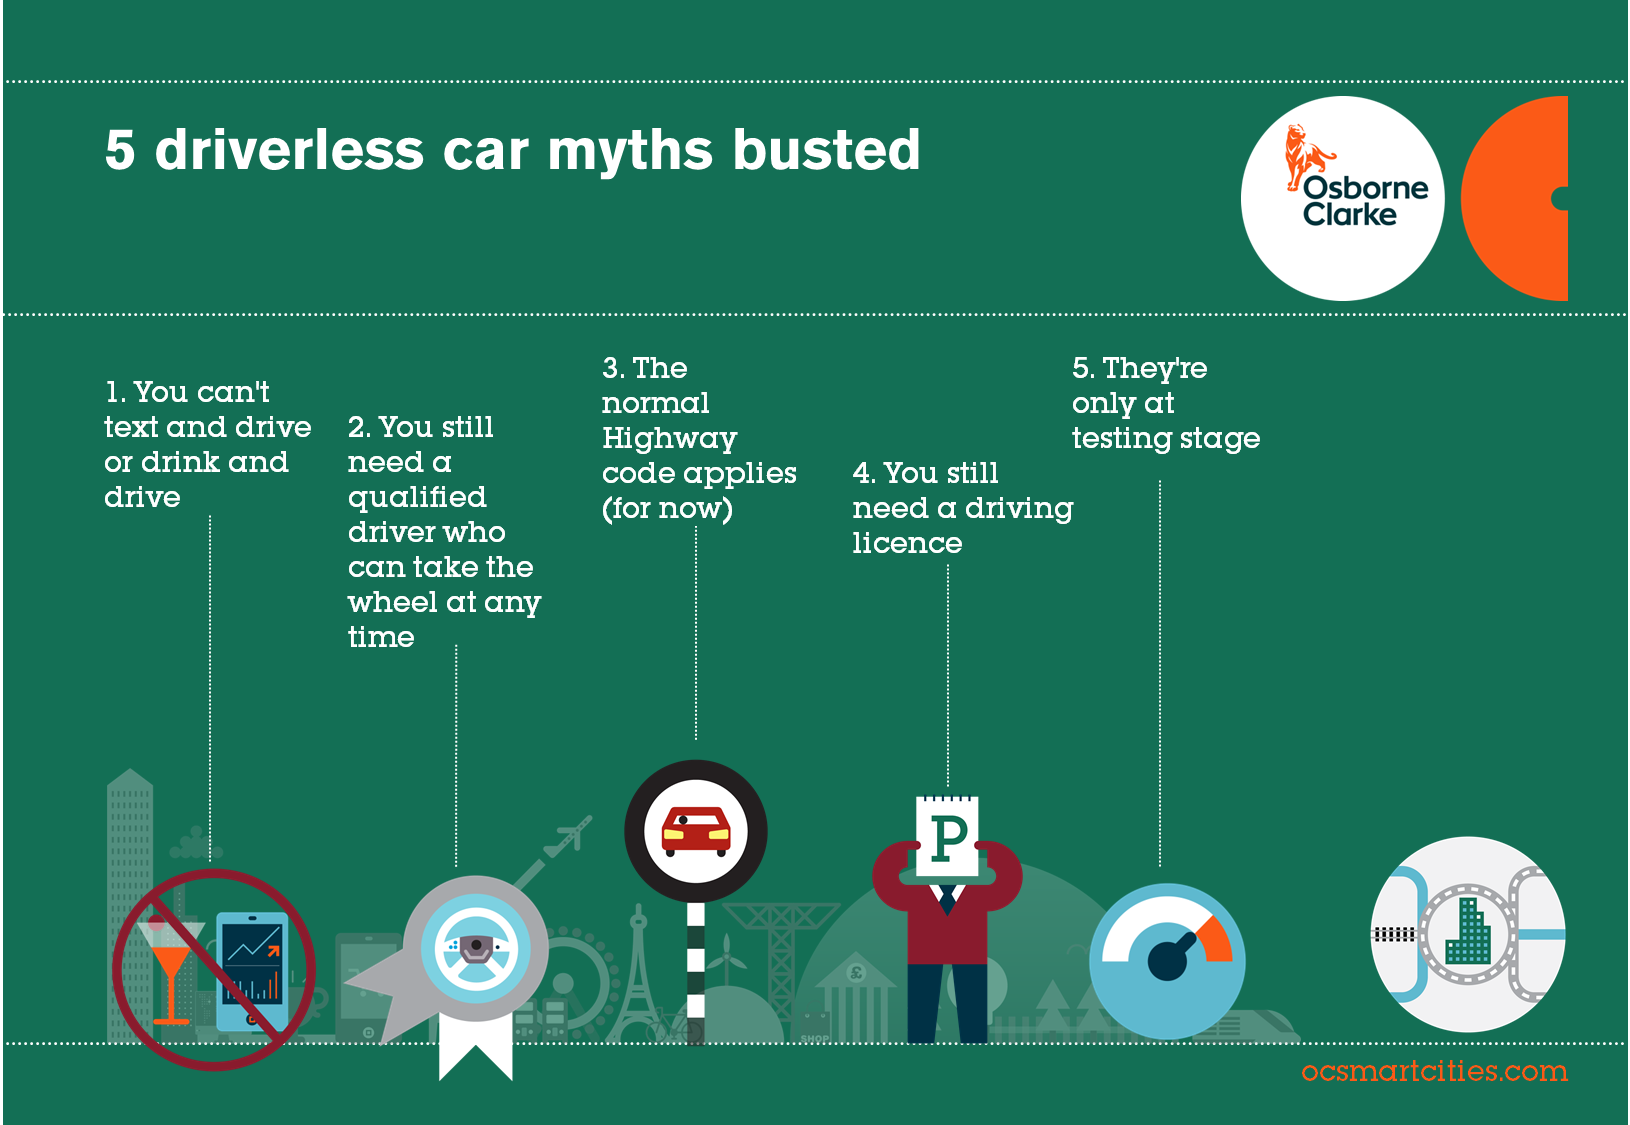 5_driverless_car_myths_busted.png__1630x1125_q85_crop_subsampling-2_upscale